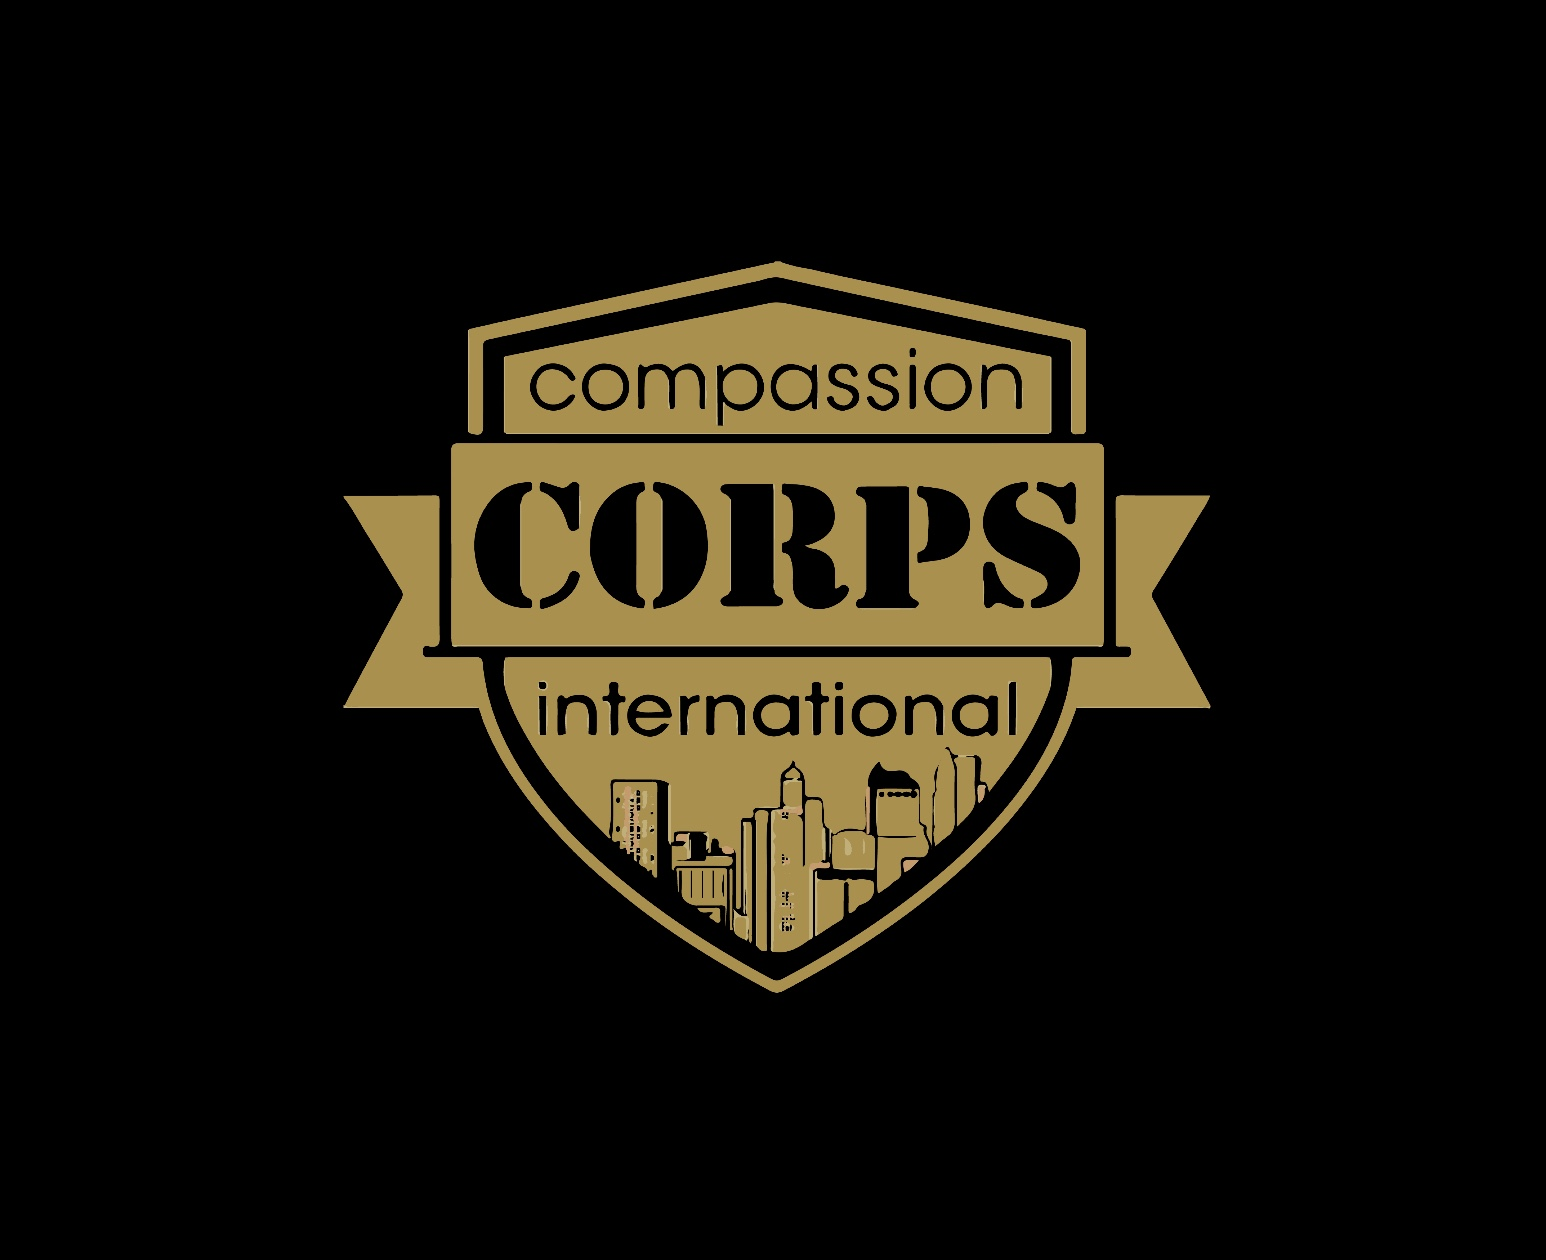 Compassion Corps International